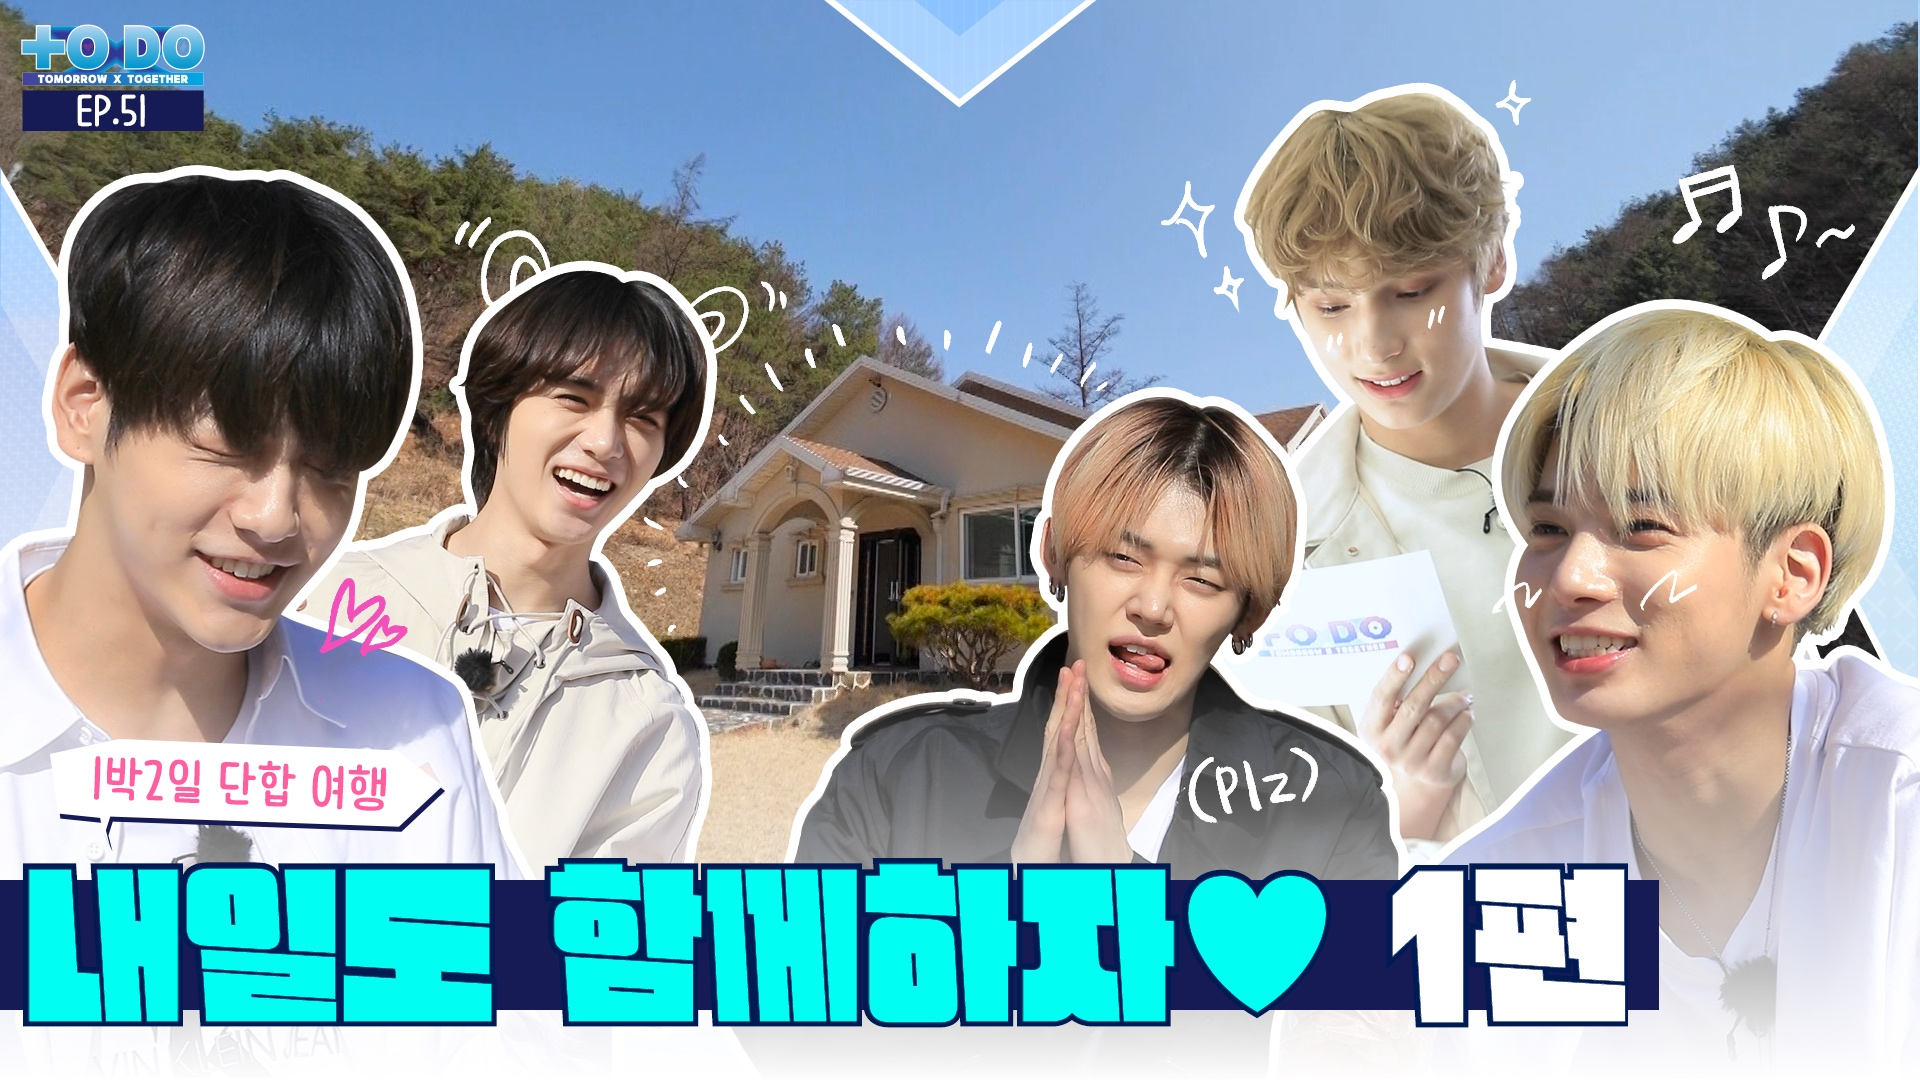 TO DO X TOMORROW X TOGETHER - EP.51